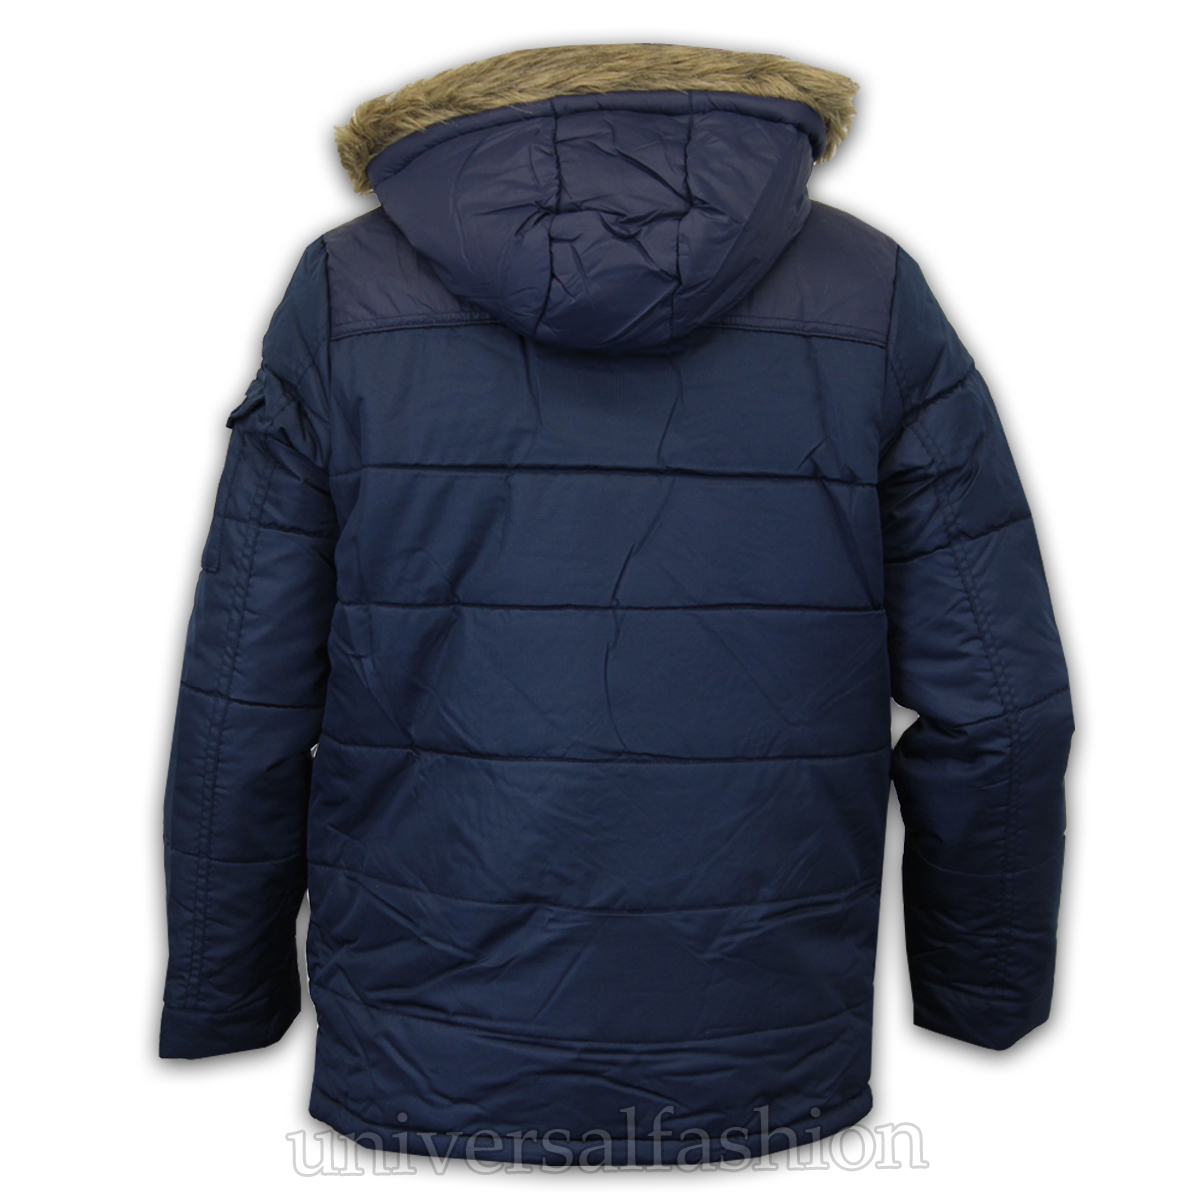 Free shipping on boys' coats, jackets and outerwear at eternal-sv.tk Shop fleeces, parkas and puffer jackets. Totally free shipping and returns.